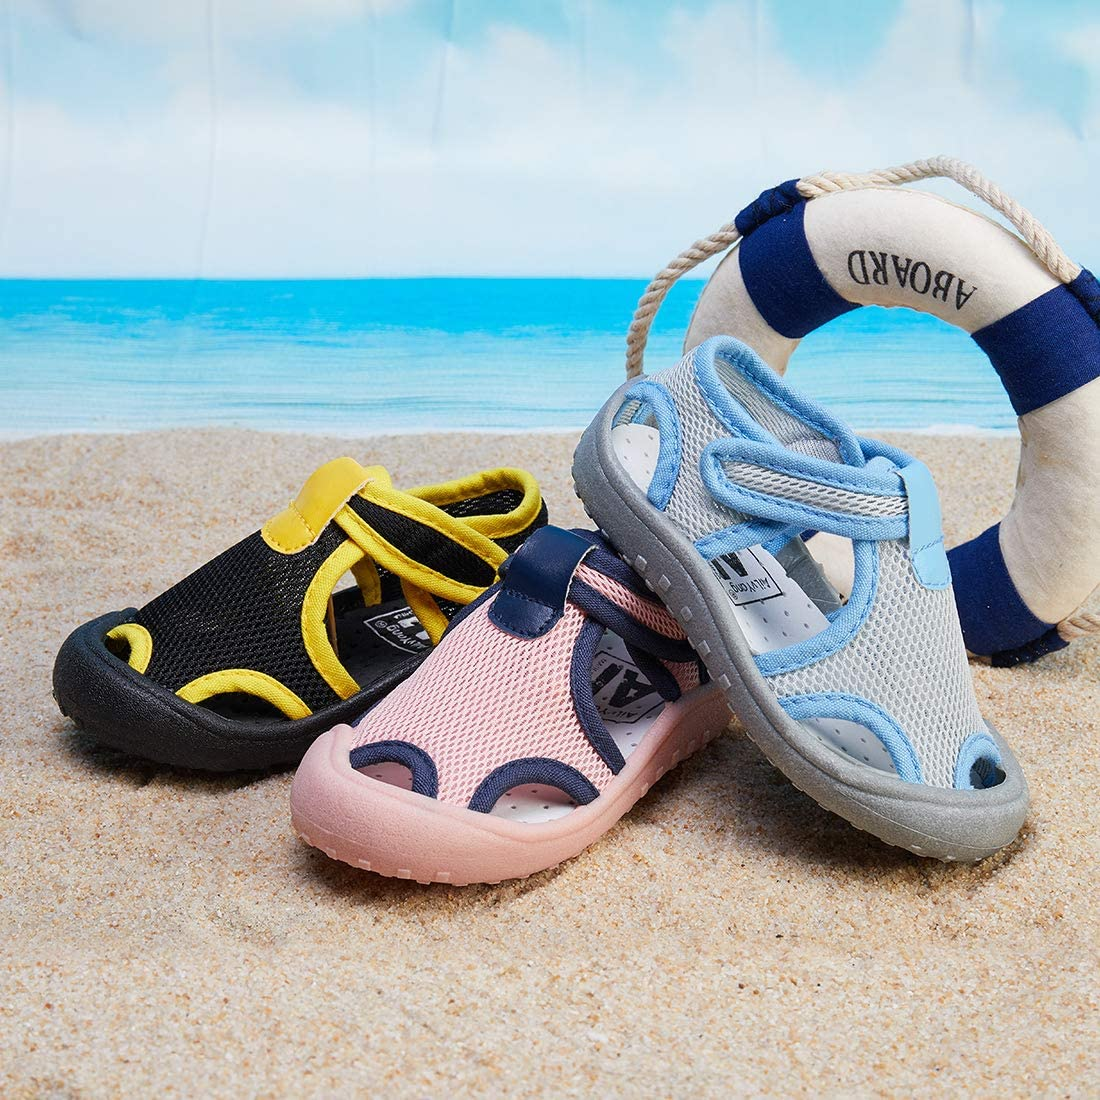 Qtolo Toddler Sandals Boys/Girls Quick Dry Sport Beach Water shoes